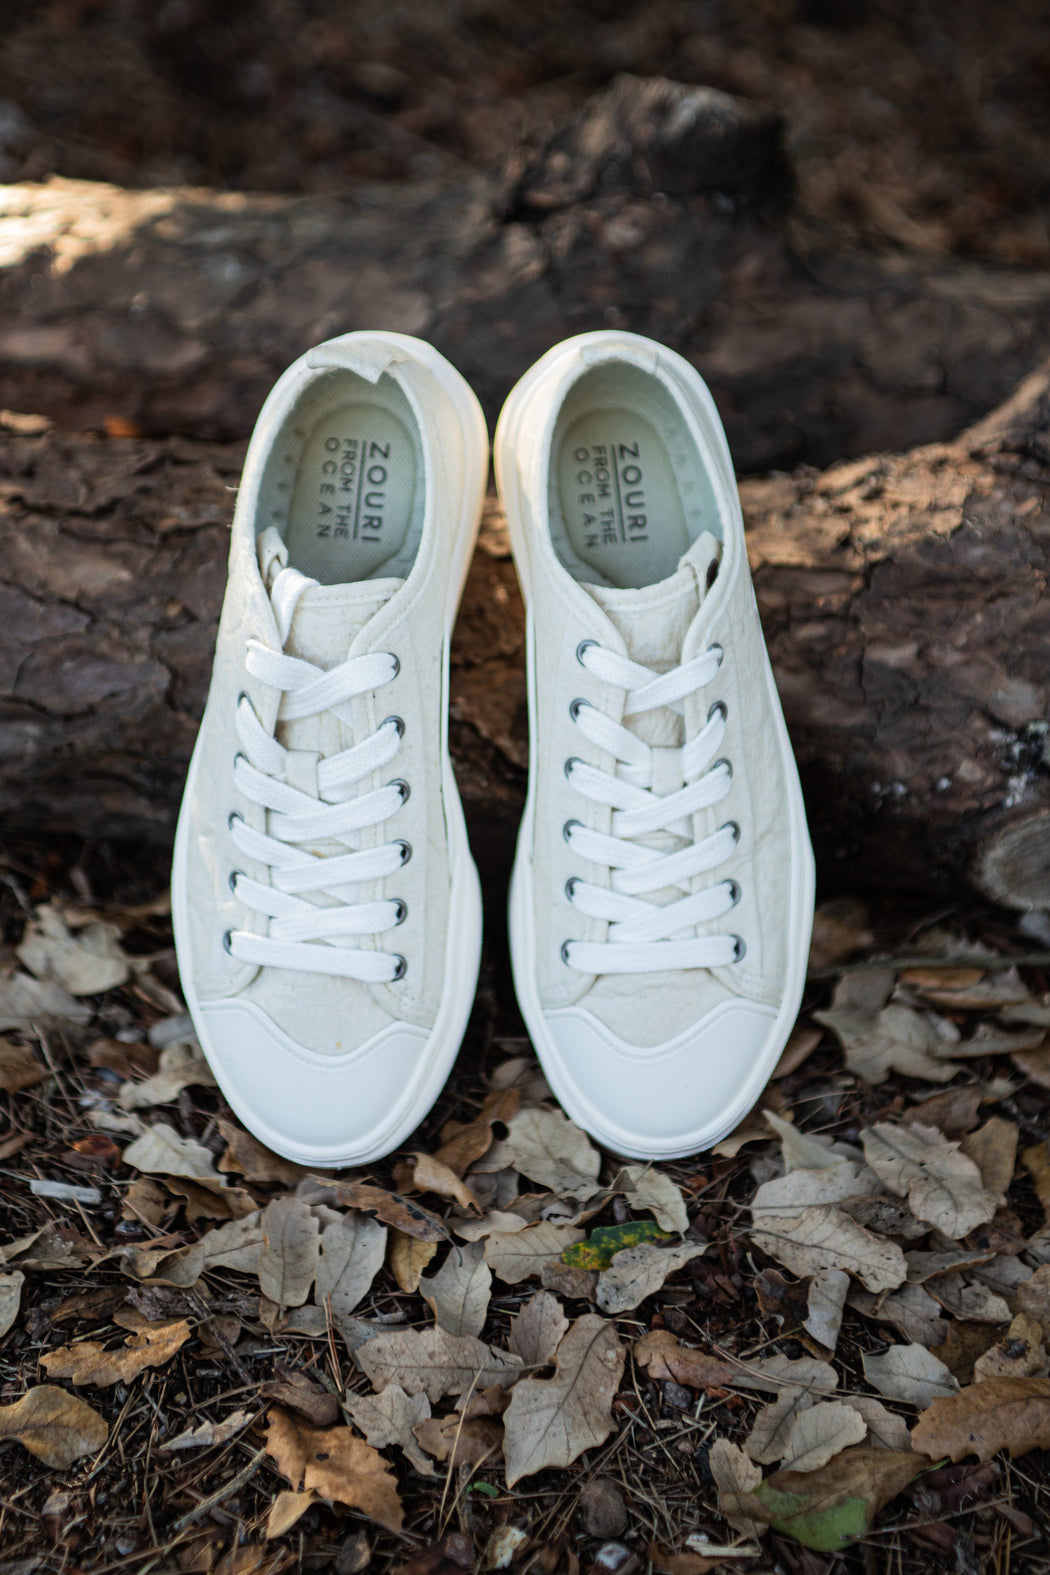 Pinatex Sneakers | Shoes | Zouri Shoes | [product_tag] - Fair Bazaar Ethical Living